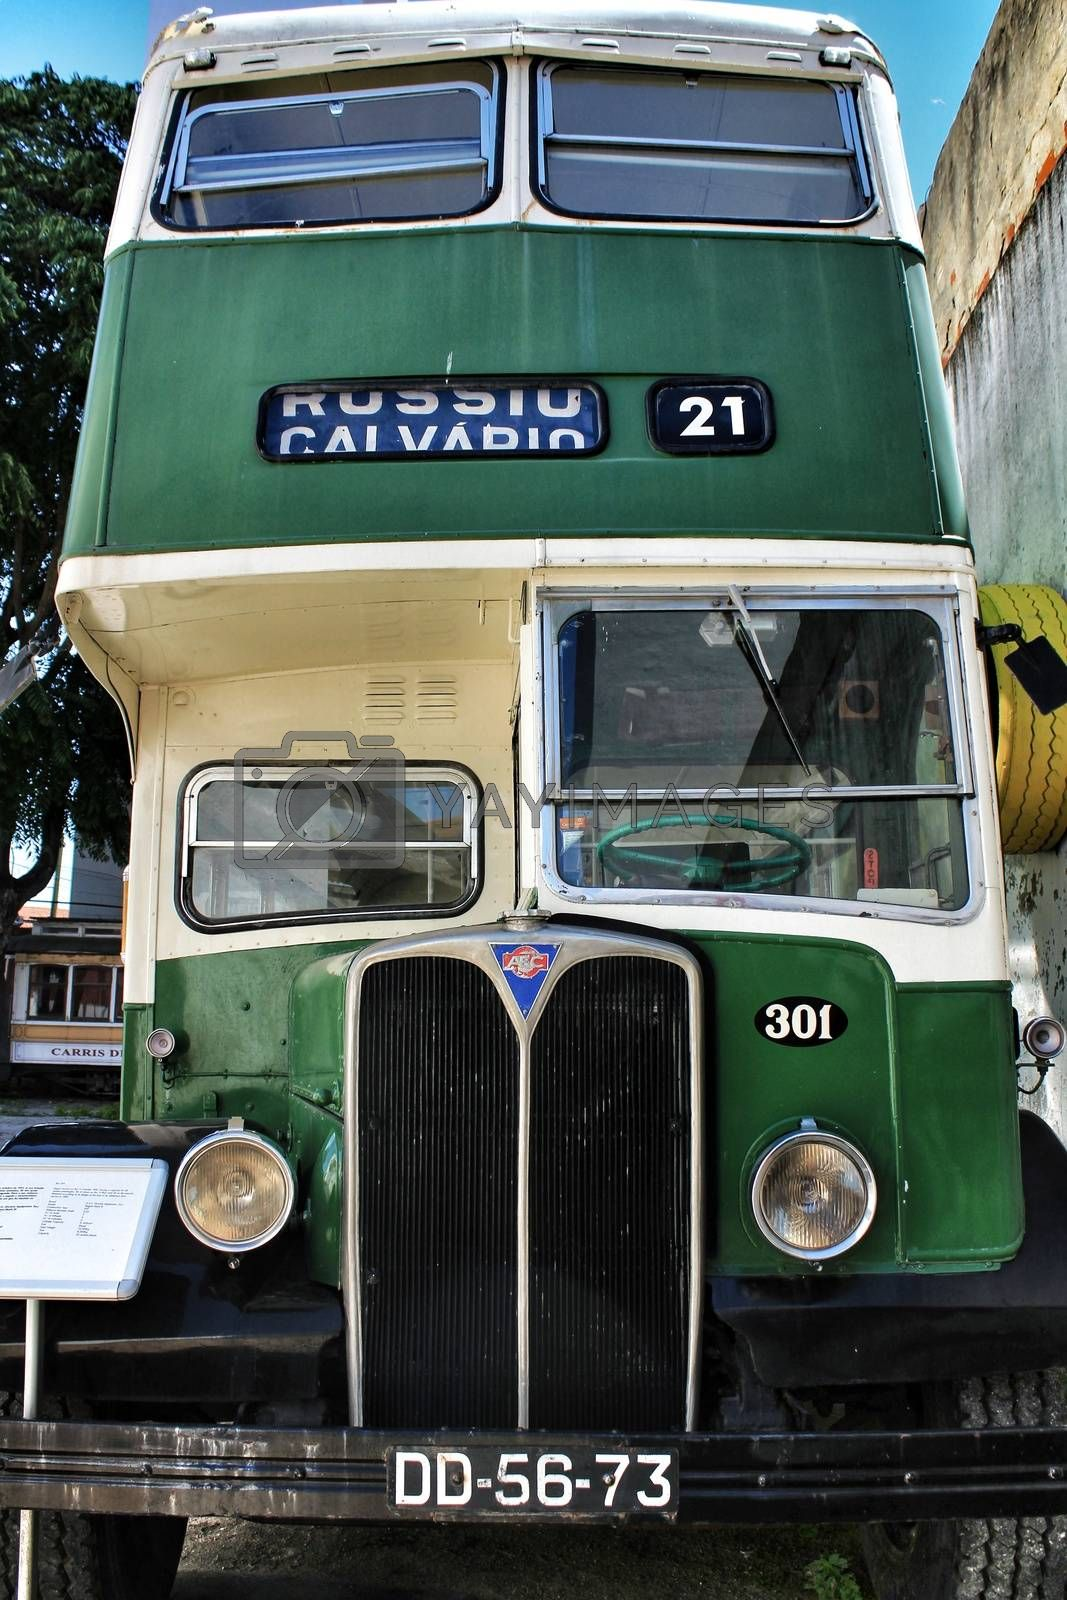 Lisbon, Portugal- June 15, 2018: Old and colorful green and orange passenger bus in a museum.